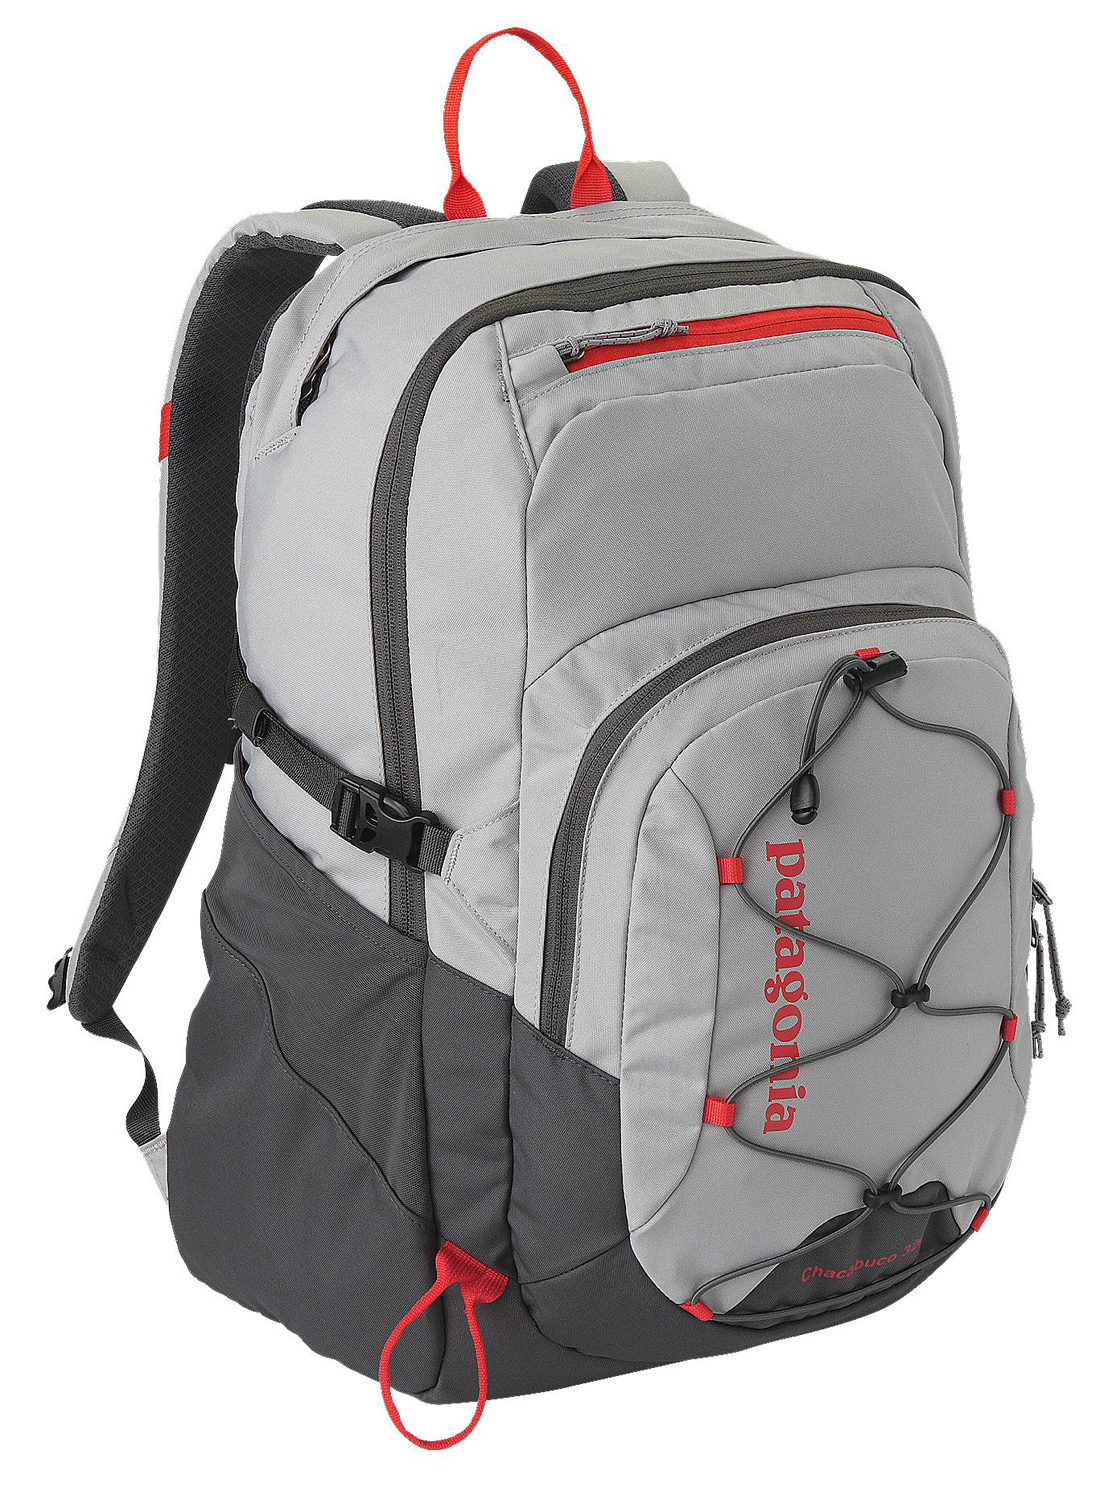 Patagonia Drifter Grey Chacabuco Backpack 32L